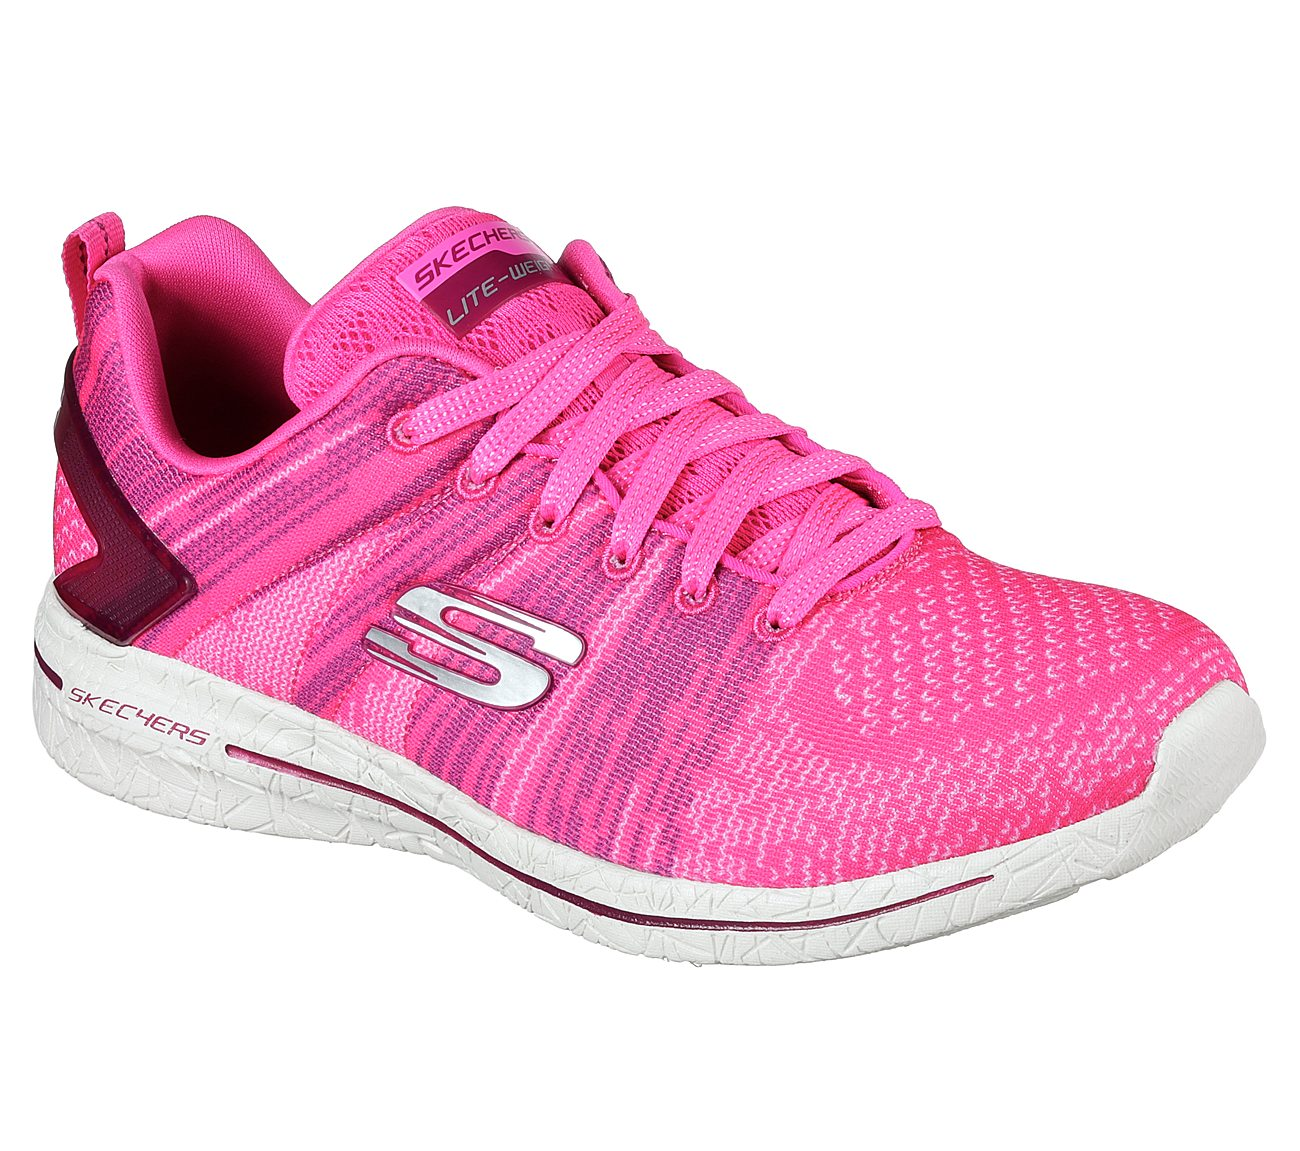 Shoes SKECHERS  Burst 20 12651HPK Hot Pink  Fitness  Sports shoes  Womens shoes       0000199421839